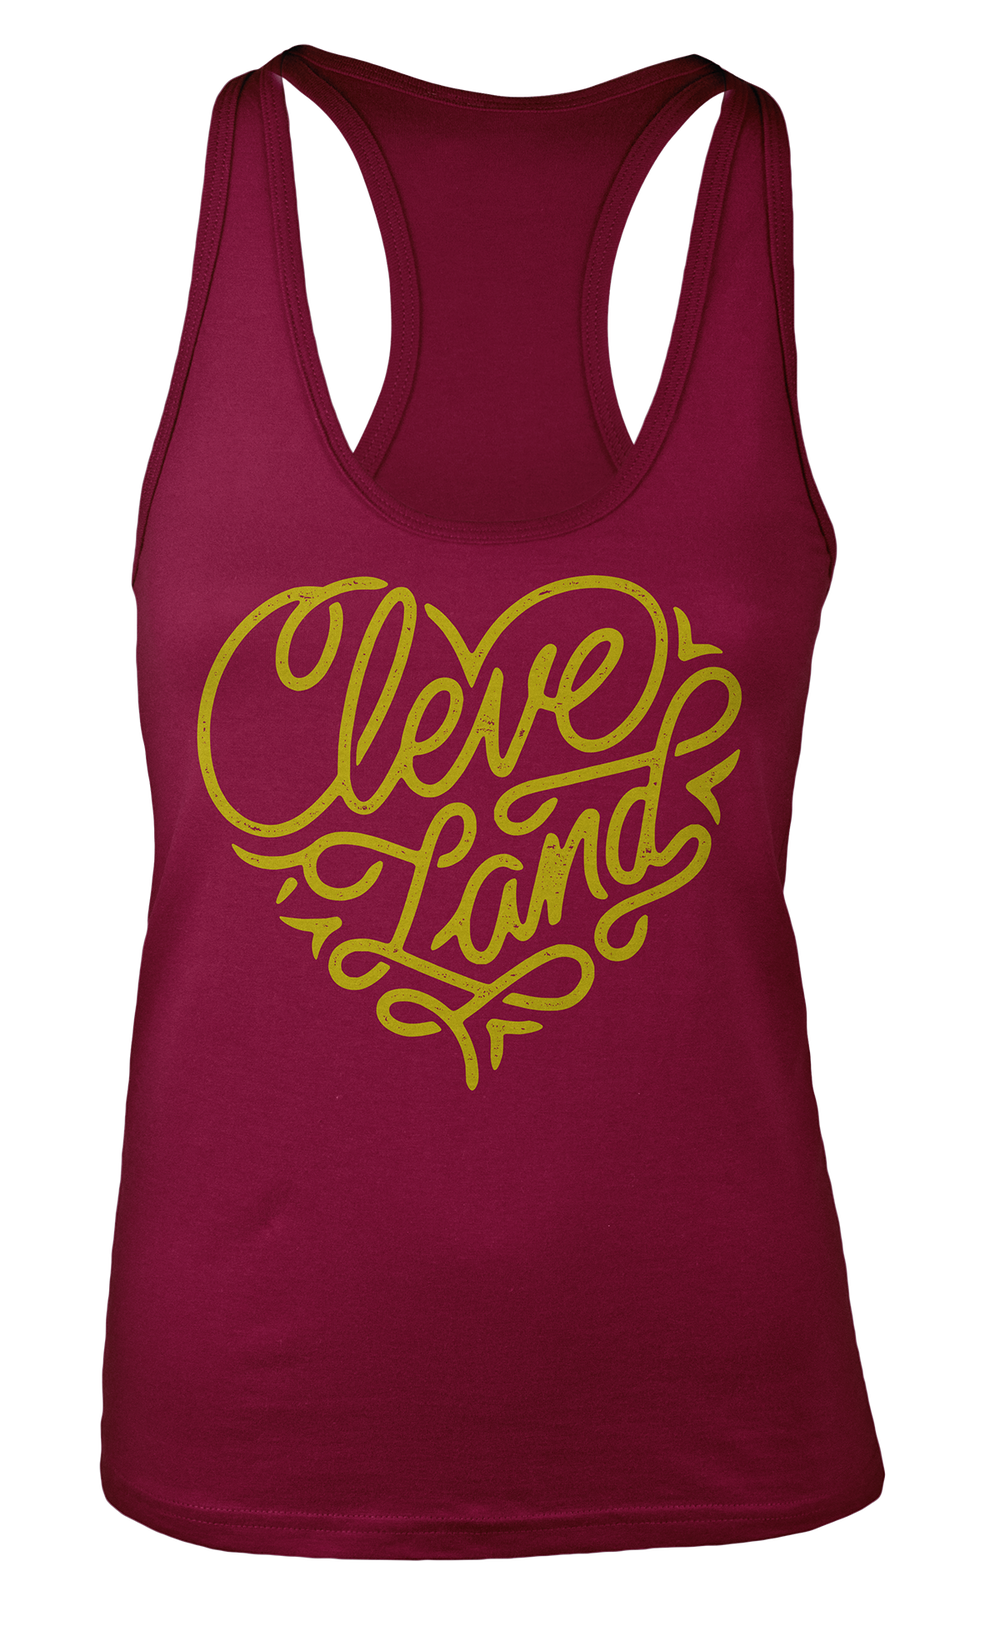 Image of Cleveland Heart Ladies Tank Maroon